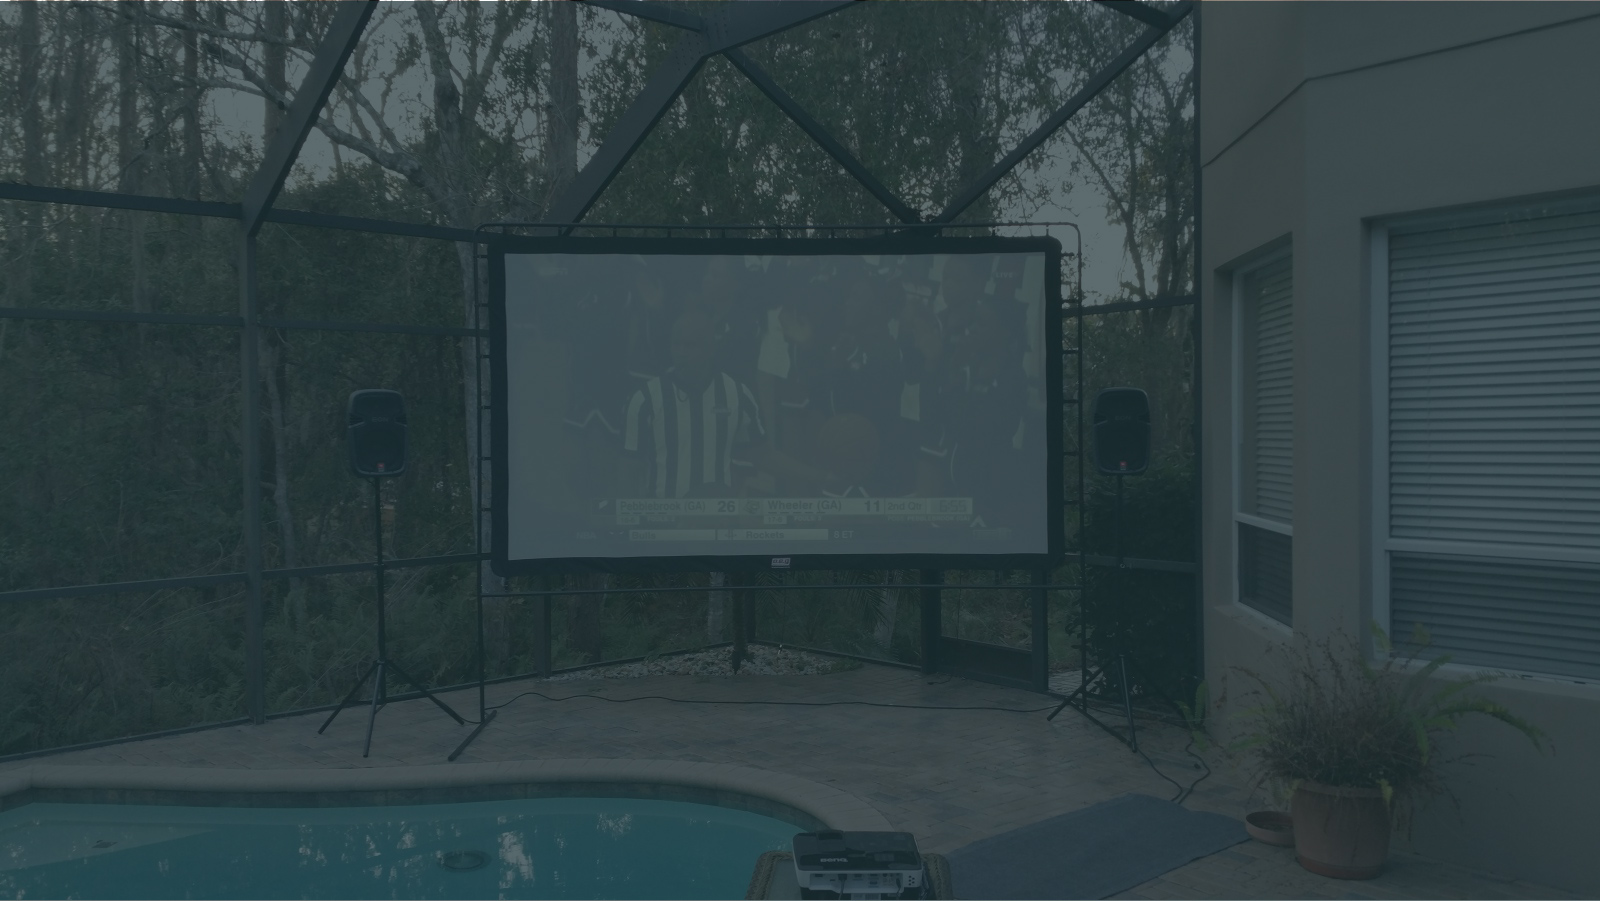 OUTDOOR MOVIE NIGHTS - We do it all. Delivery, setup and come back to breakdown so you can enjoy time with family and friends.